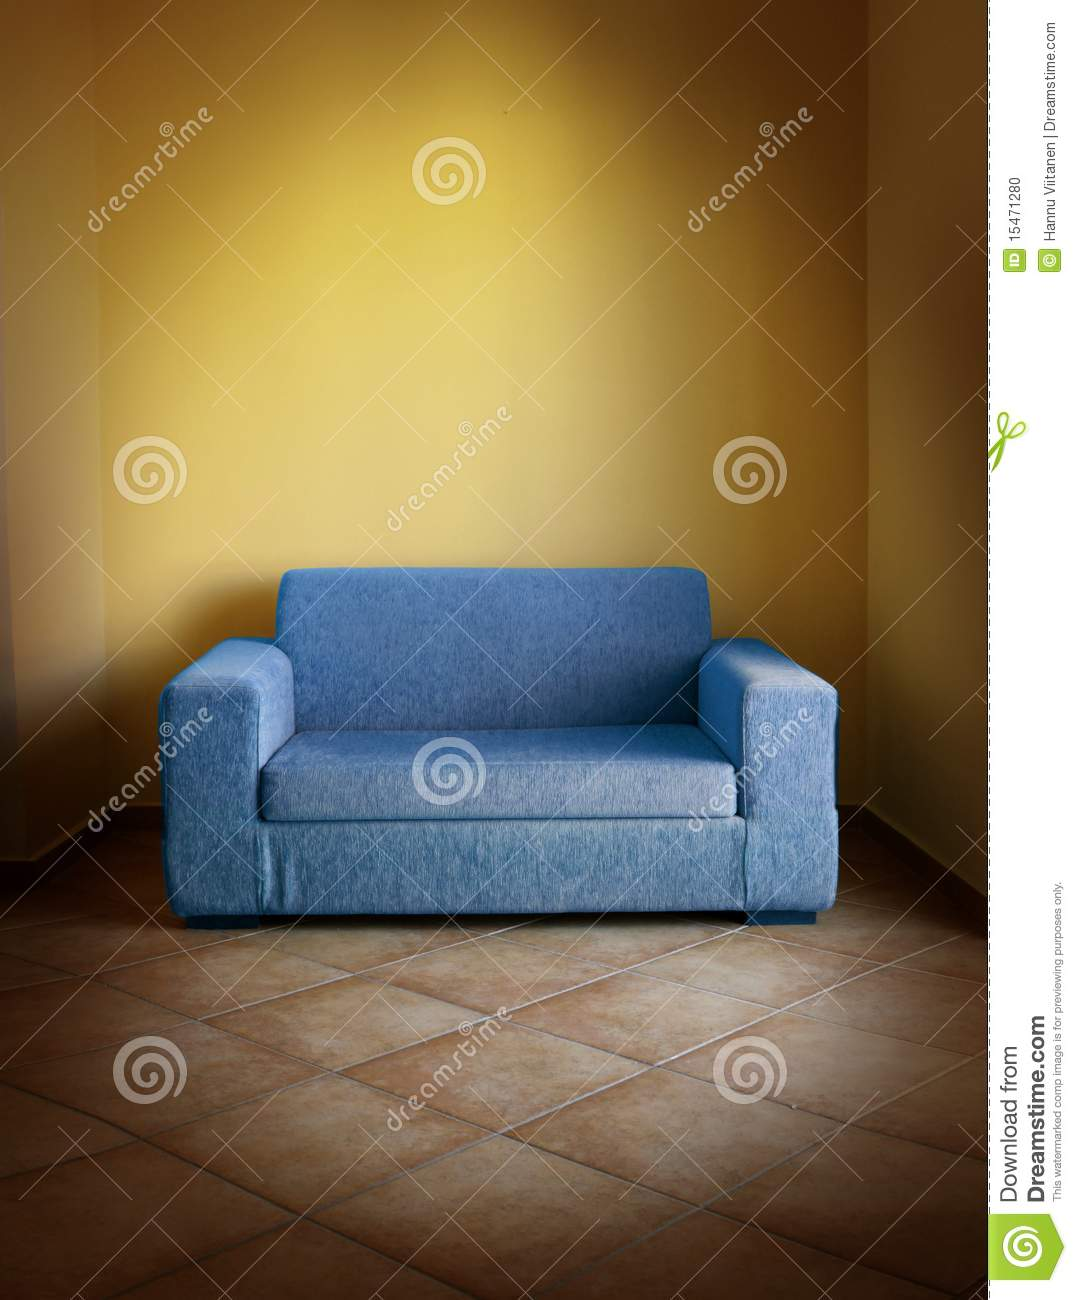 Blue Sofa Yellow Wall Stock Photo Image Of Couch Living